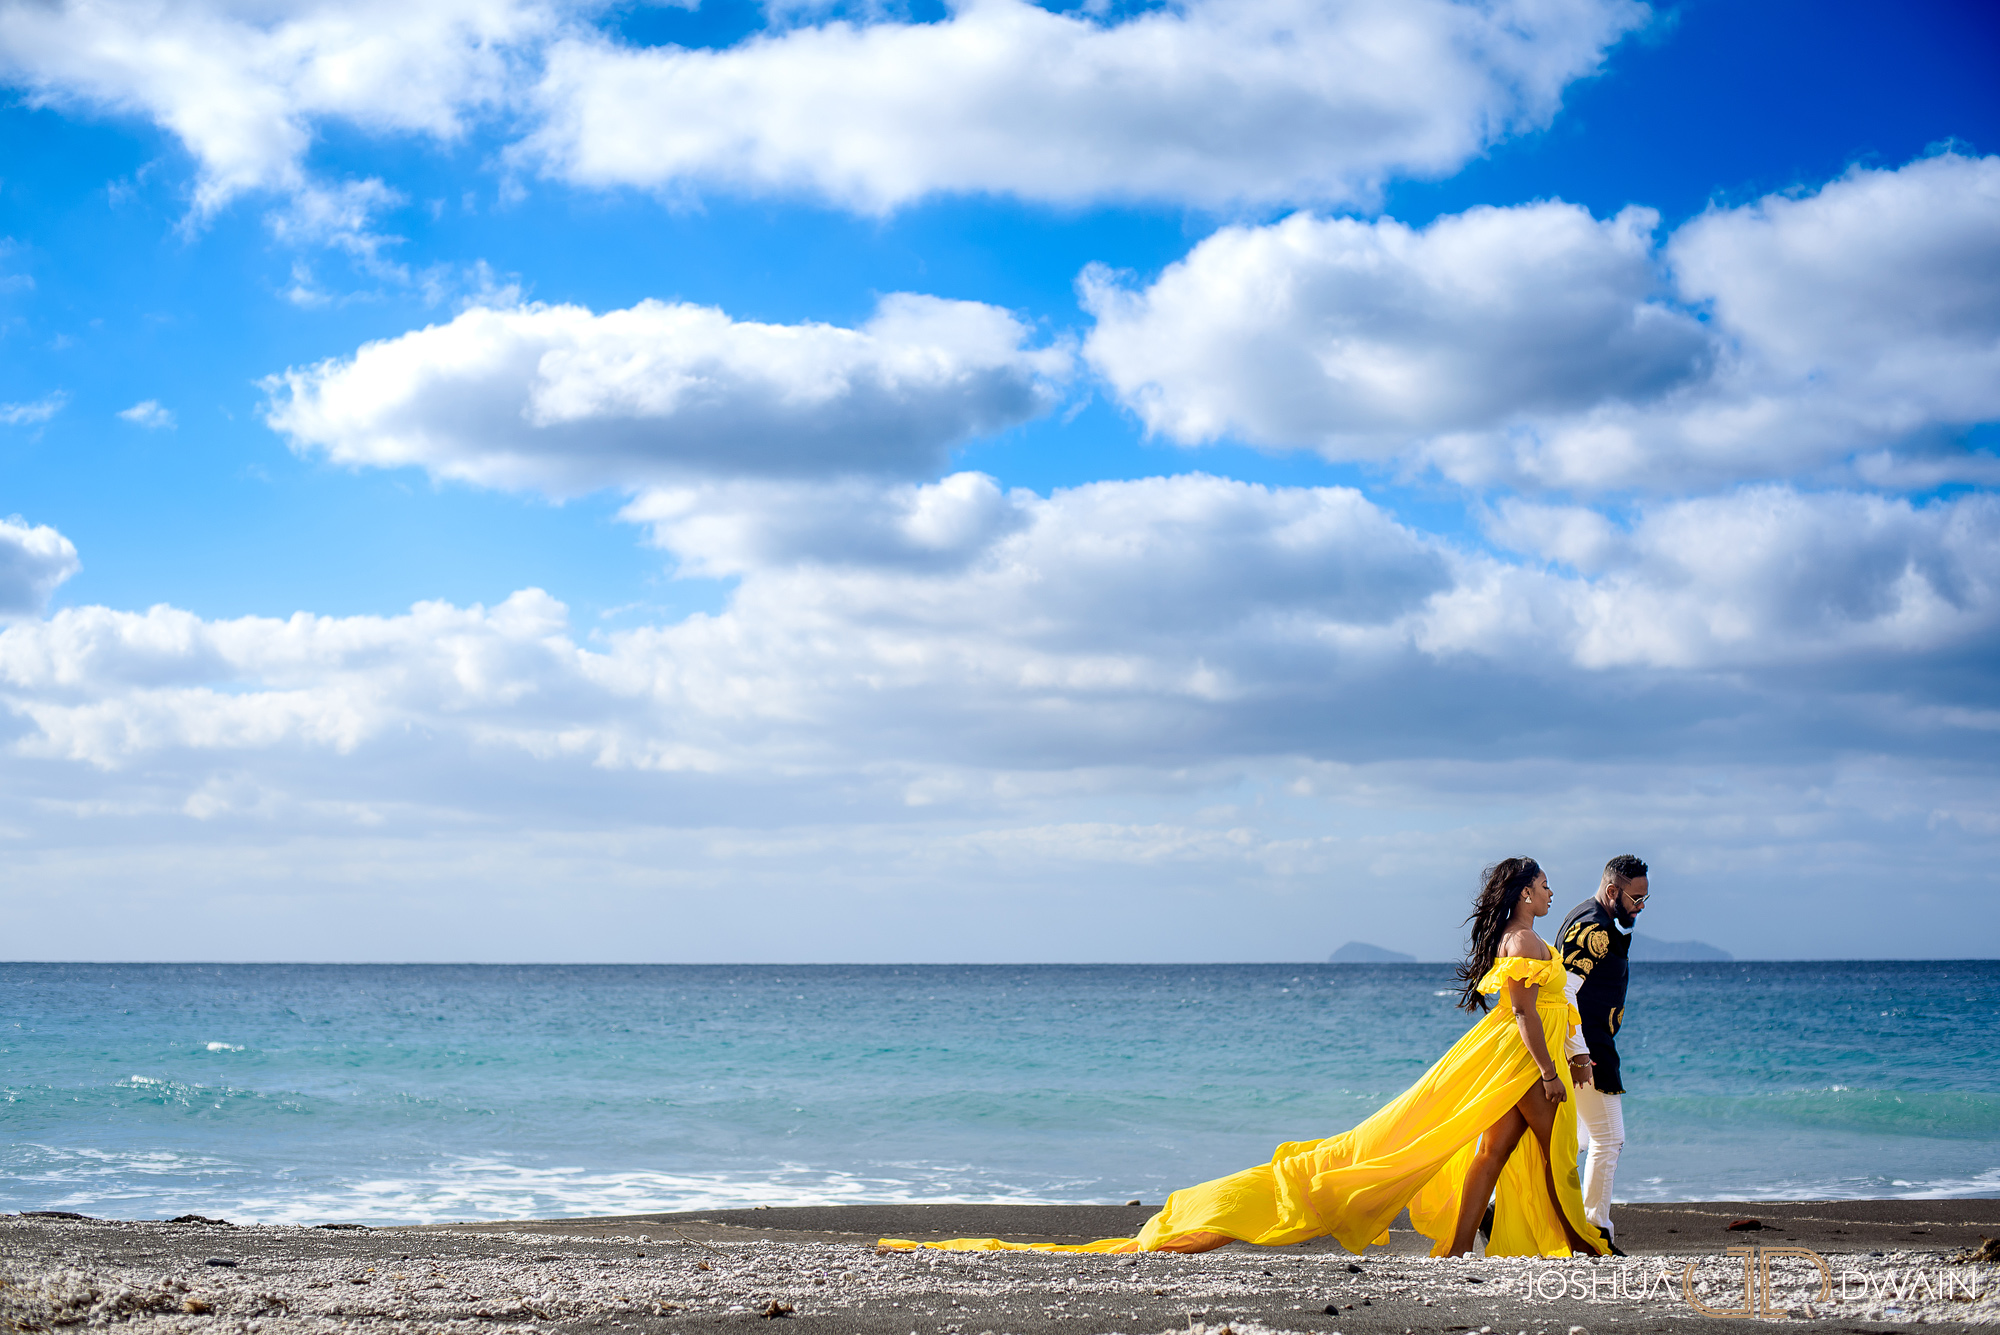 ekene-issac-19-santorini-oia-thira-greece-wedding-engagement-photos-african-american-destination-photographer-joshua-dwain